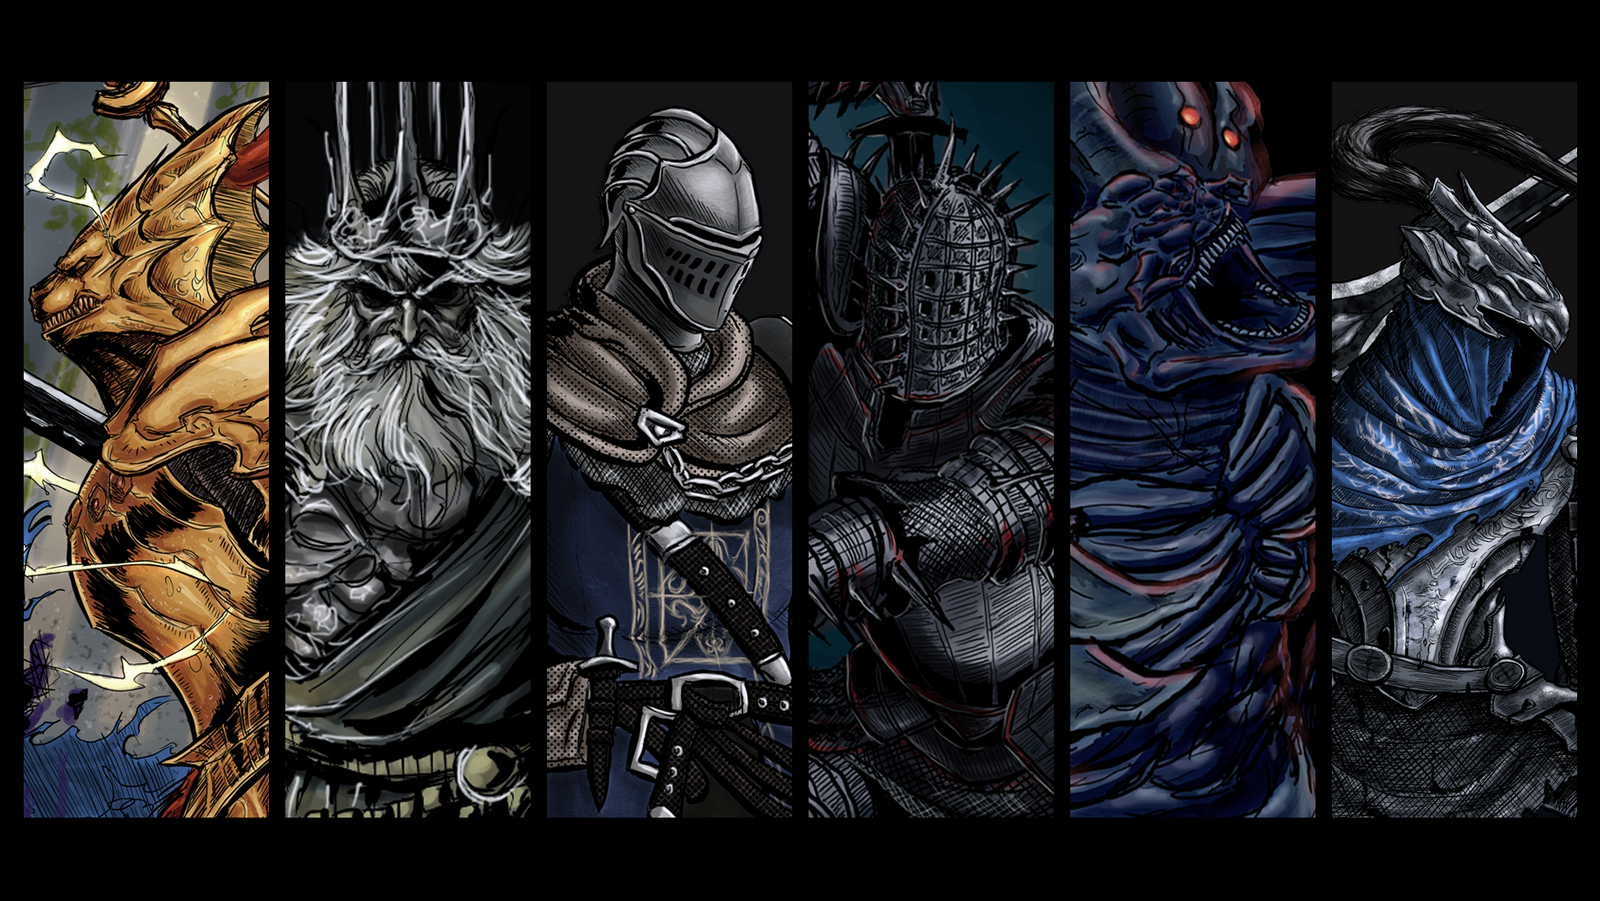 30 Best Pieces Of Dark Souls Fan Art 545053398 as well Watch moreover Dark Souls Wallpaper 1920x1080 Solaire besides Grimdark Souls Solaire Of Astora 615274478 besides 1293529. on oscar of astora cosplay